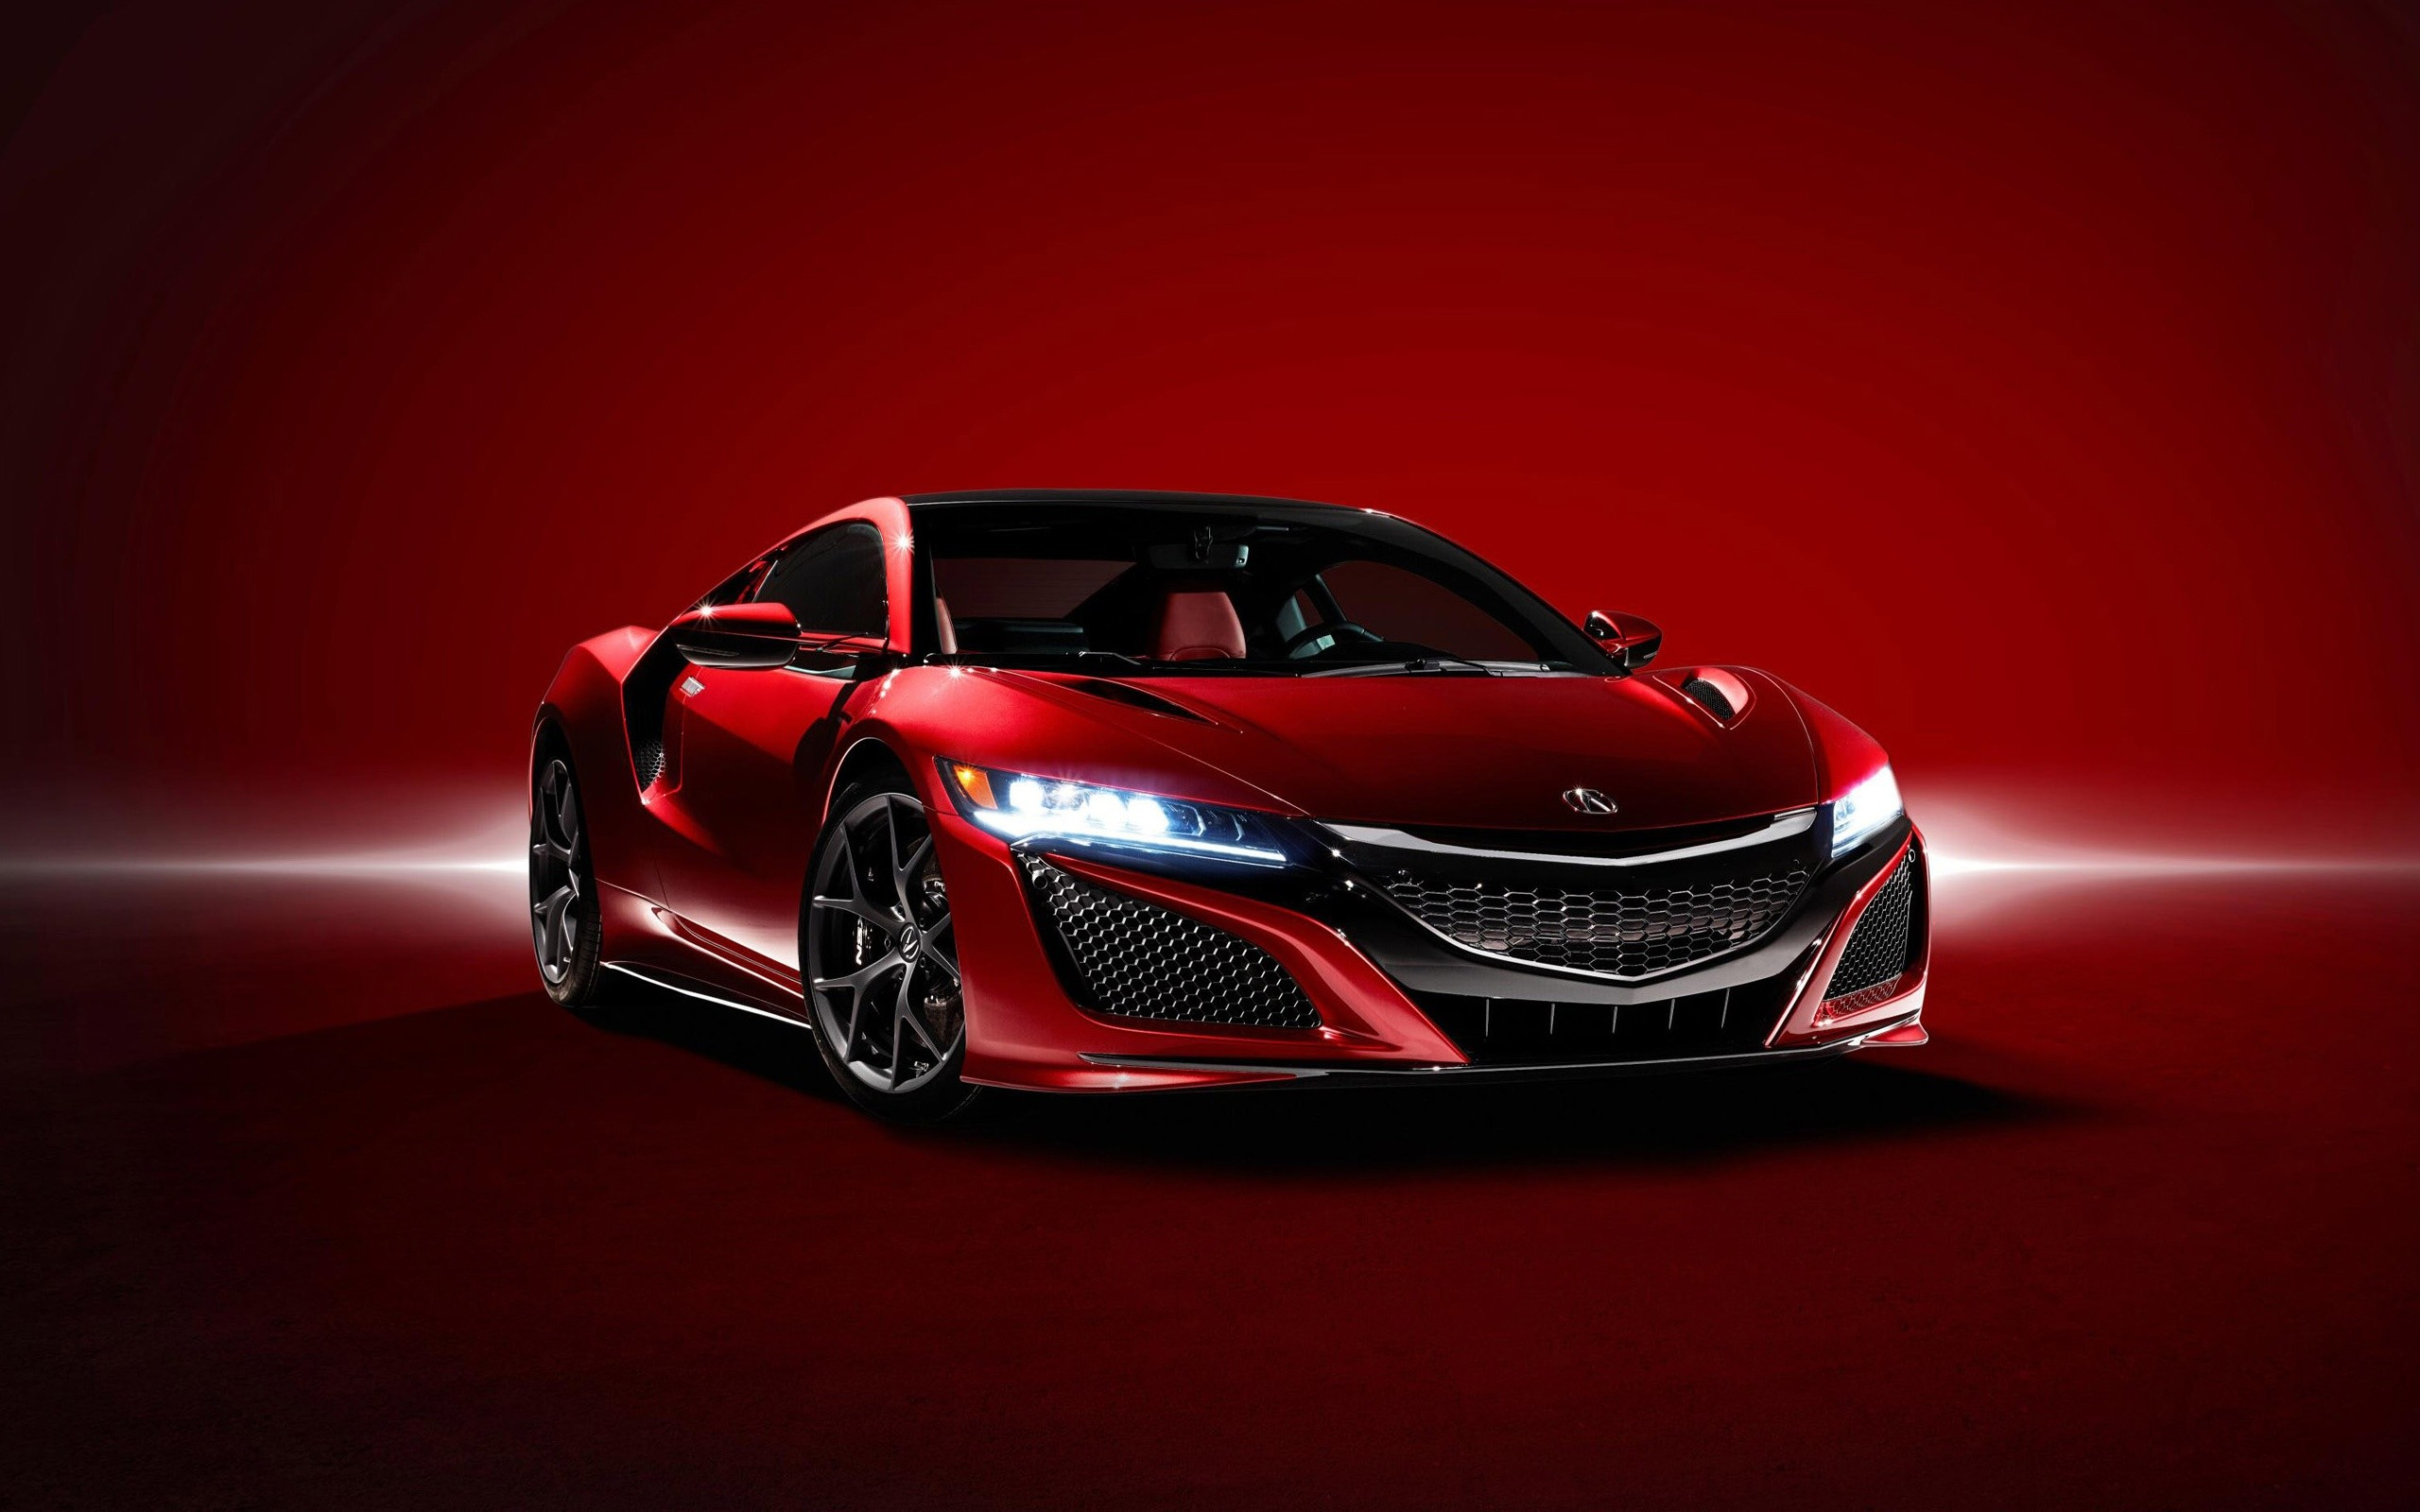 2560x1600 New Acura NSX Red Car Wallpaper Download High Quality